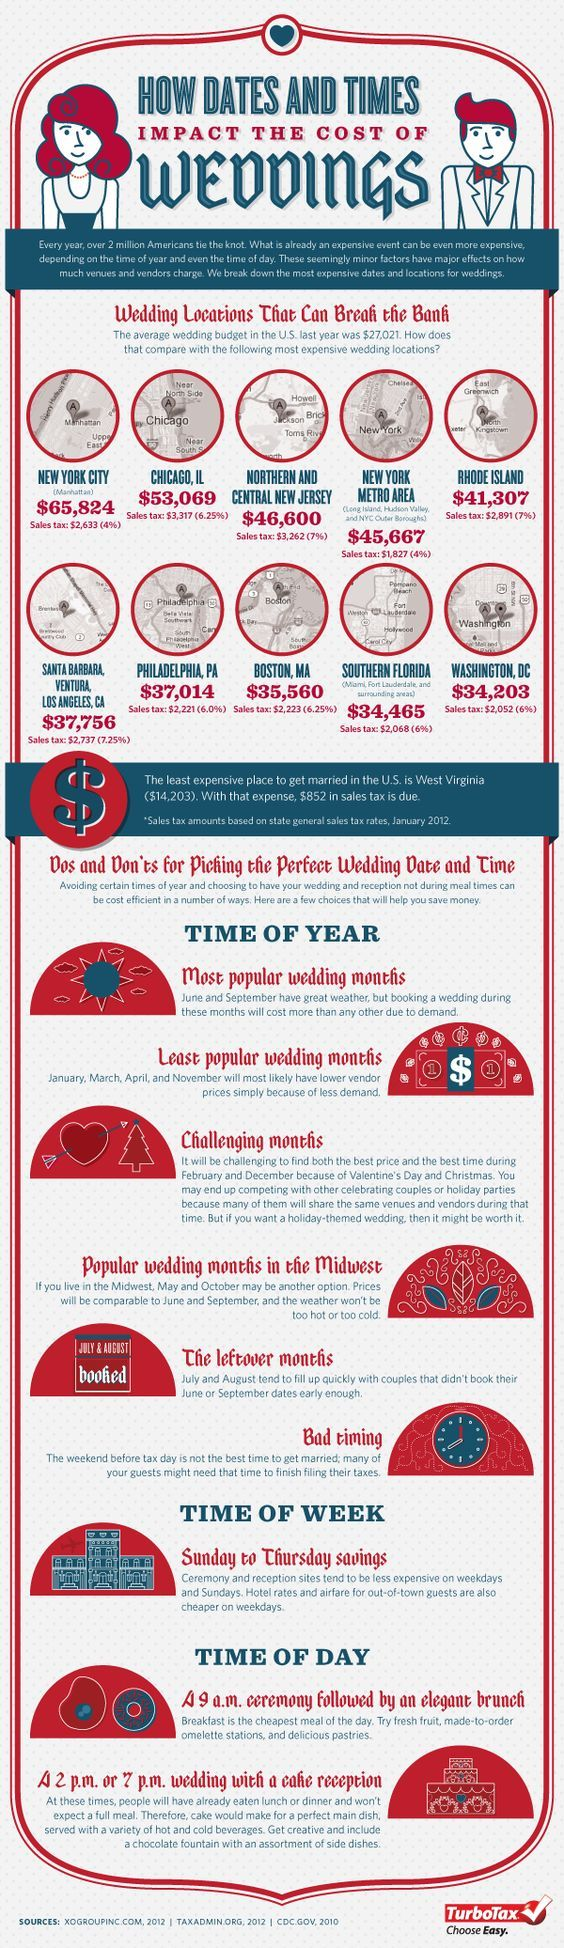 How Dates And Times Impact Wedding Costs Planning A As Plus Size Bride Can Be Very Expensive Ordeal So Here Are Some